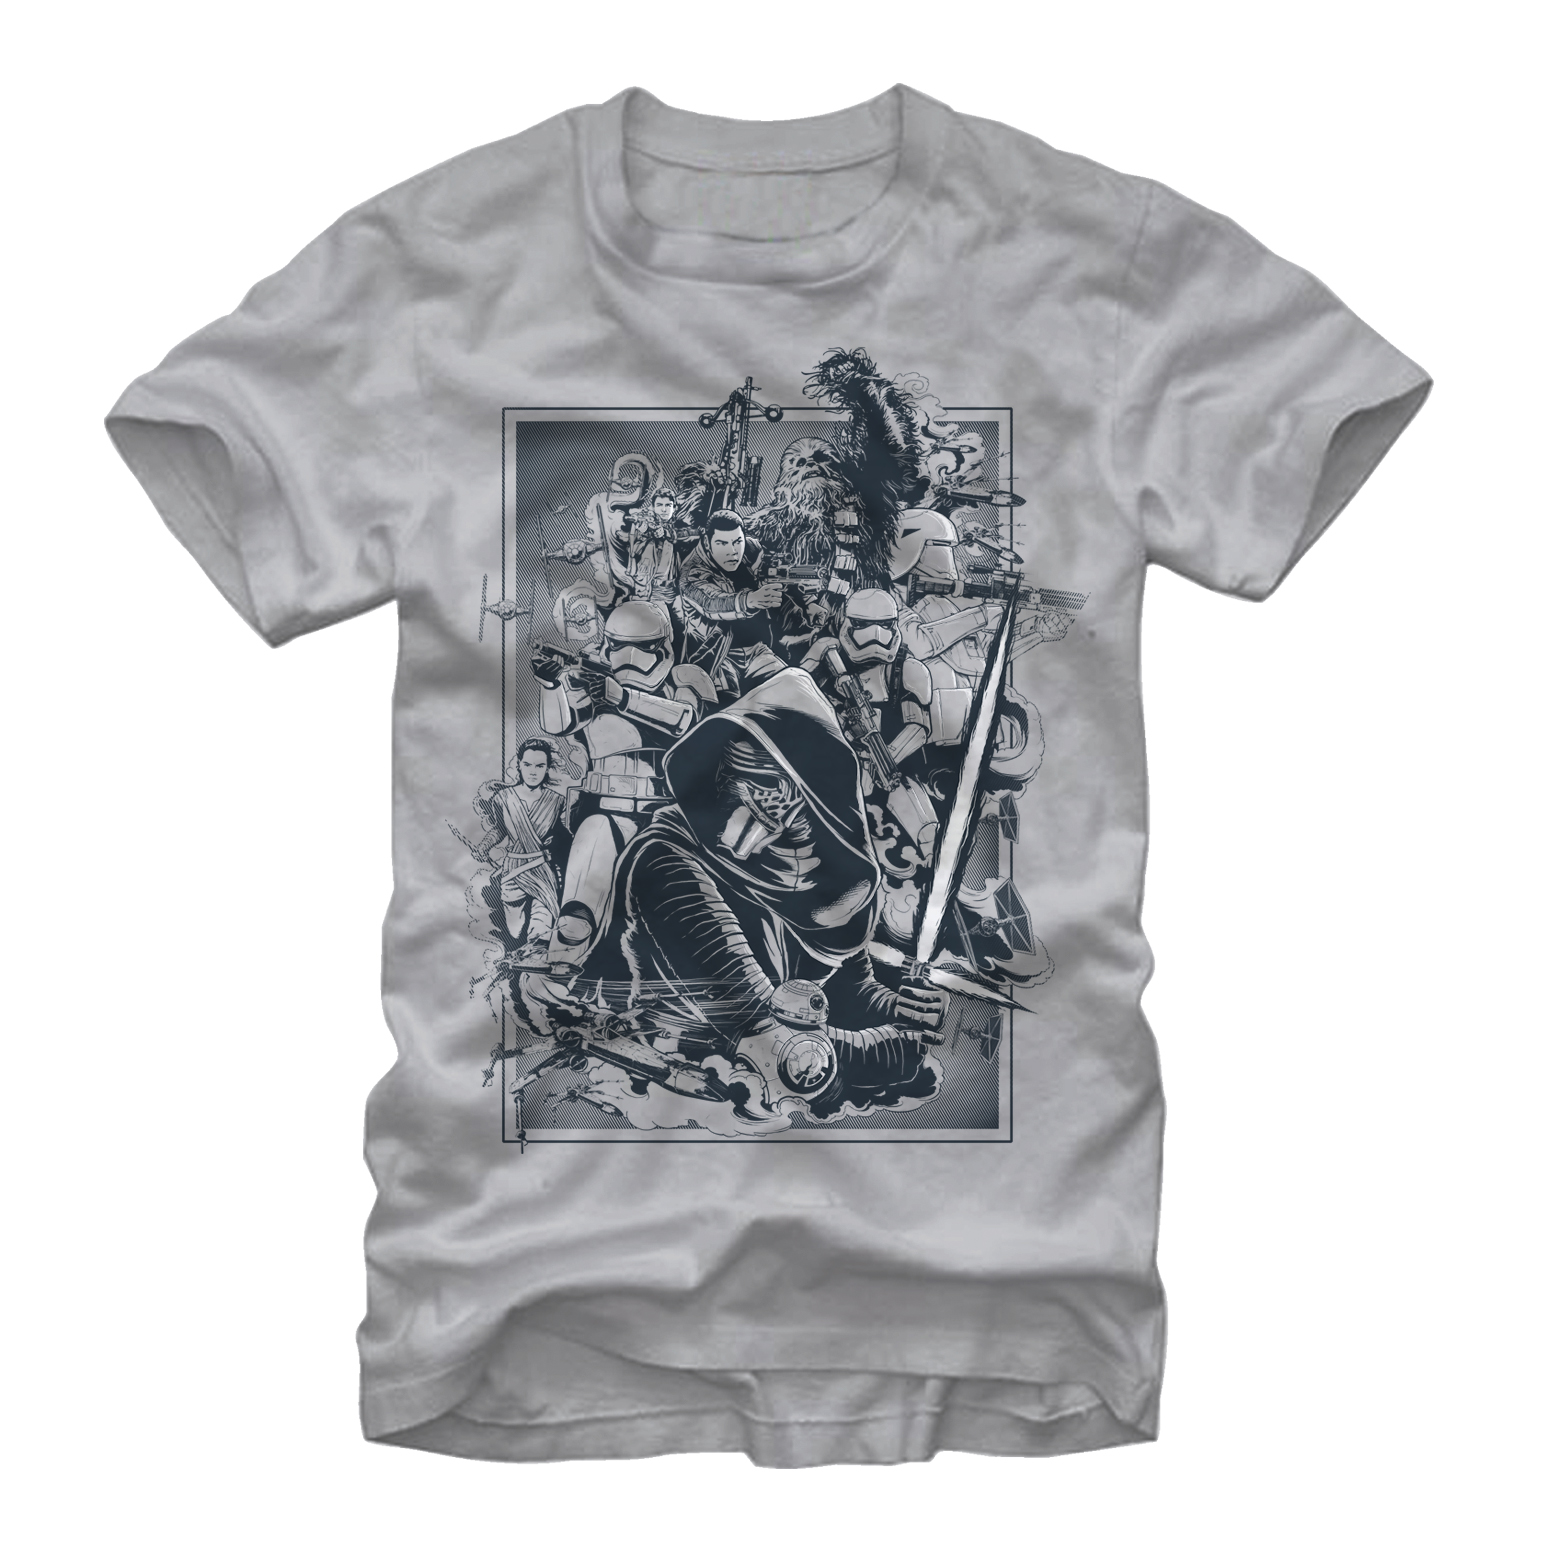 Star Wars The Force Awakens- Clash Of Forces Apparel T-Shirt - Grey